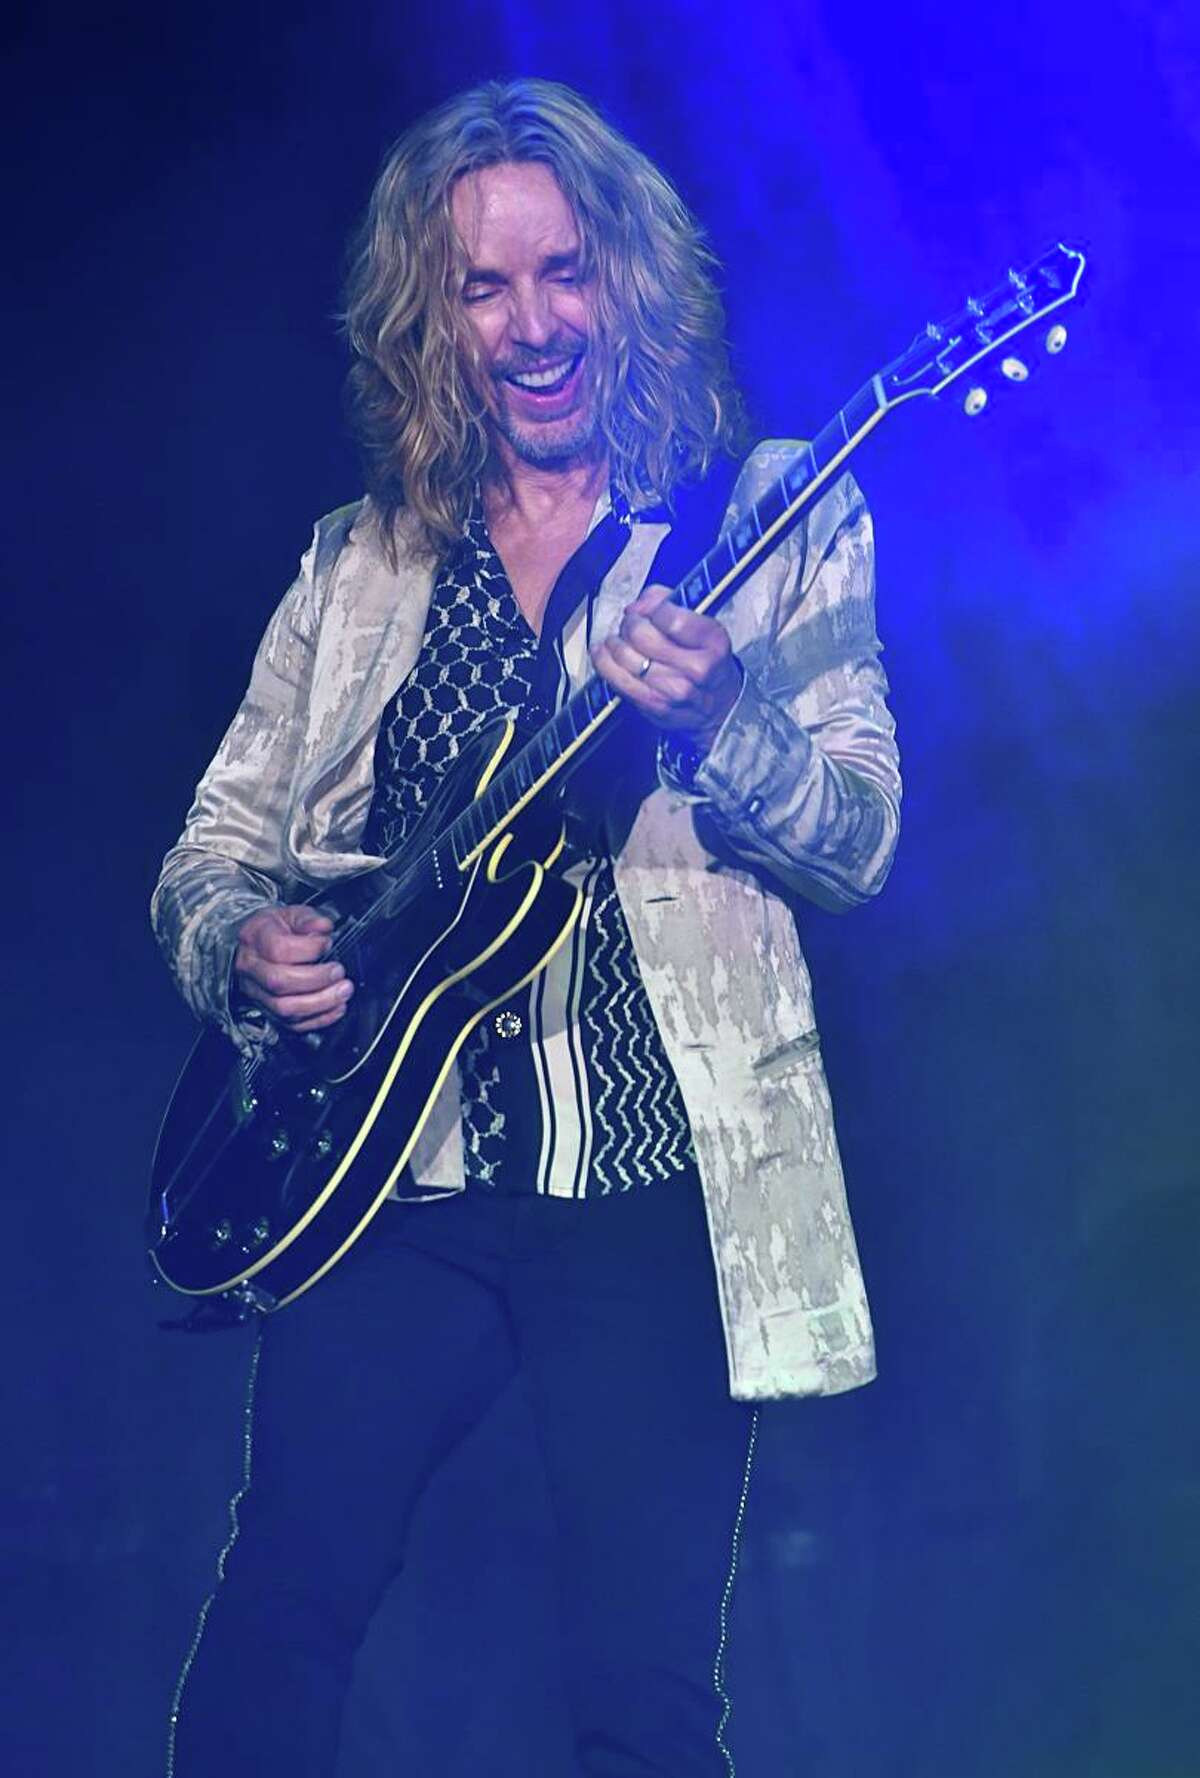 """Singer, songwriter and guitarist Tommy Shaw of the rock band Styx is shown having fun on stage during the groups """"live"""" concert appearance at The Big E in West Springfield, Massachusetts on Oct. 3, 2021."""